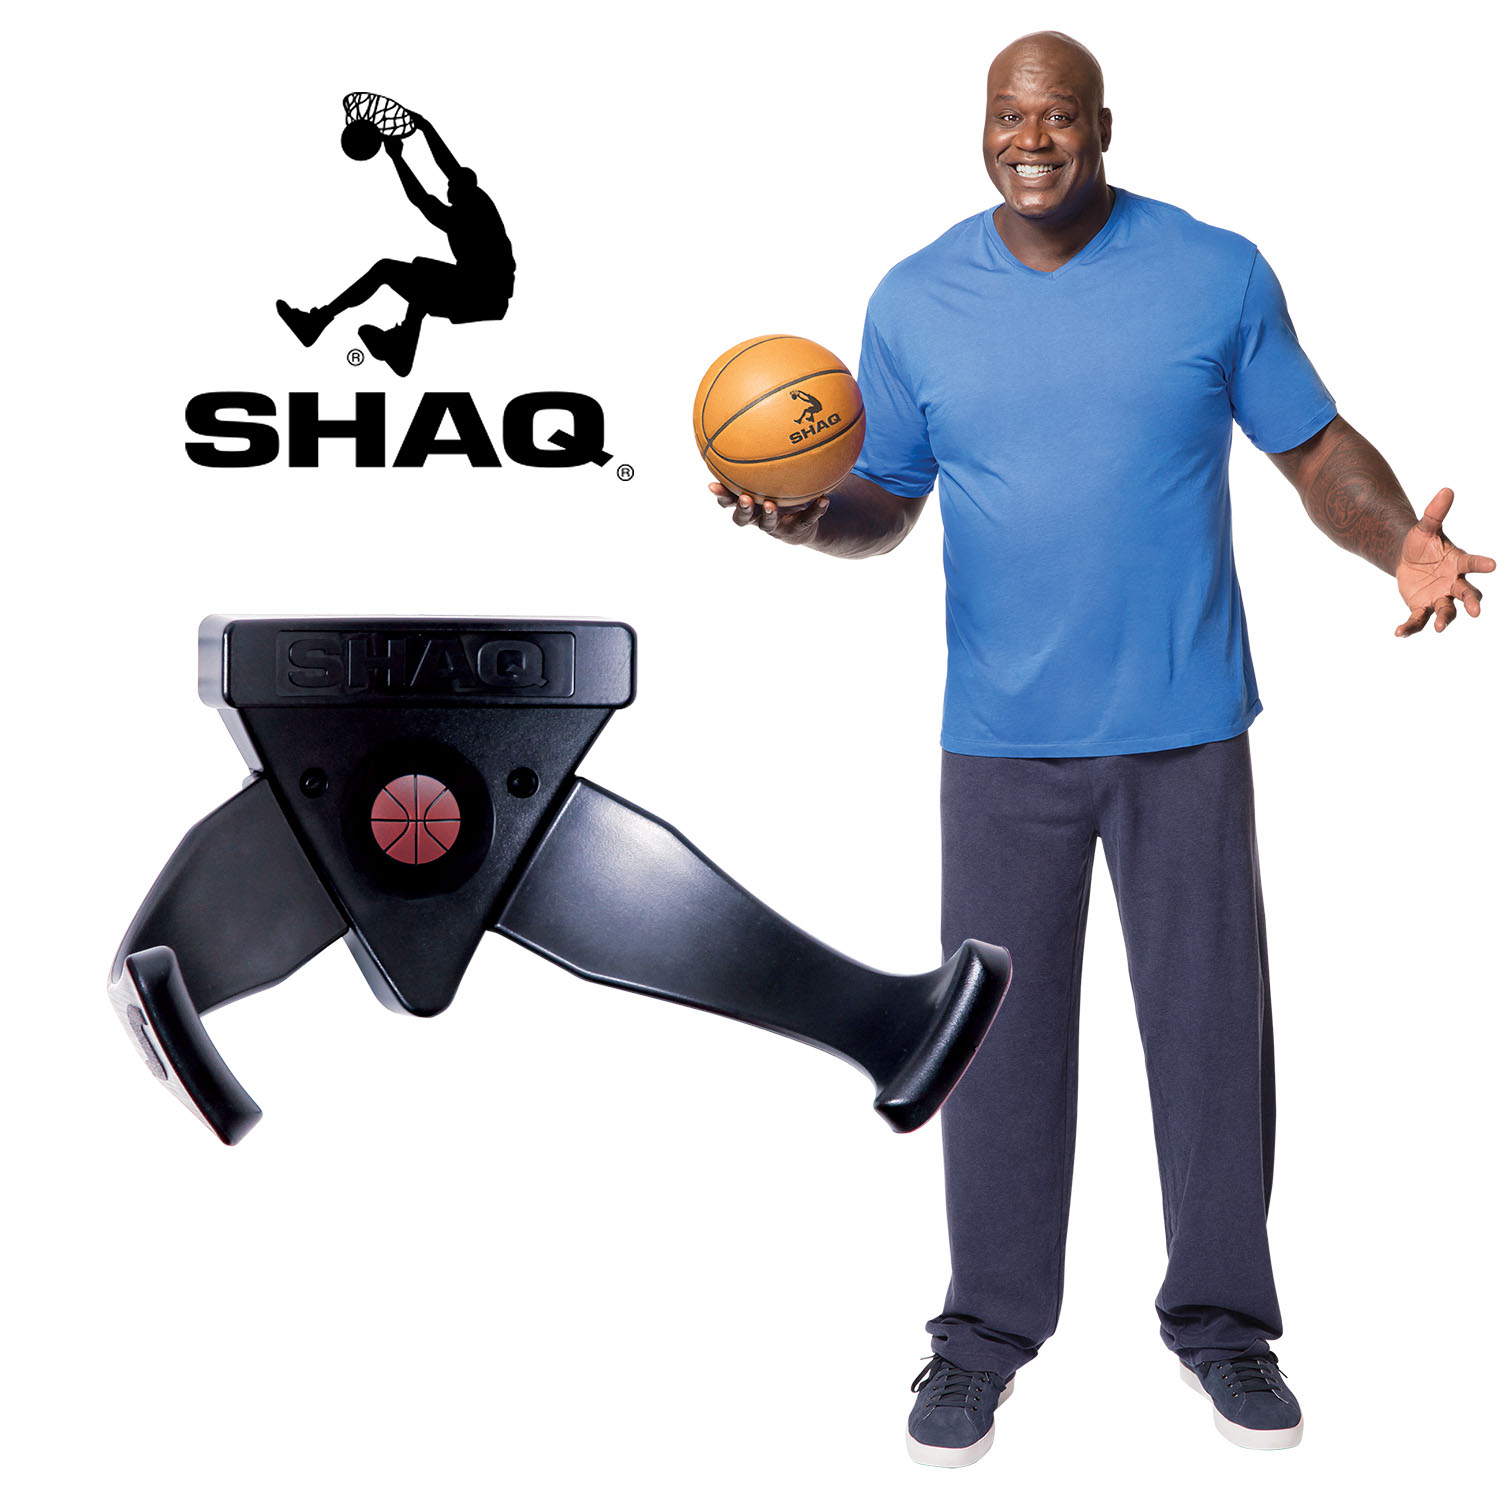 Shaq Ball Holder Storage & Decoration Shelf Ball Claw basketball Wall Mounted Floating Shelf Bracket Ball Claw